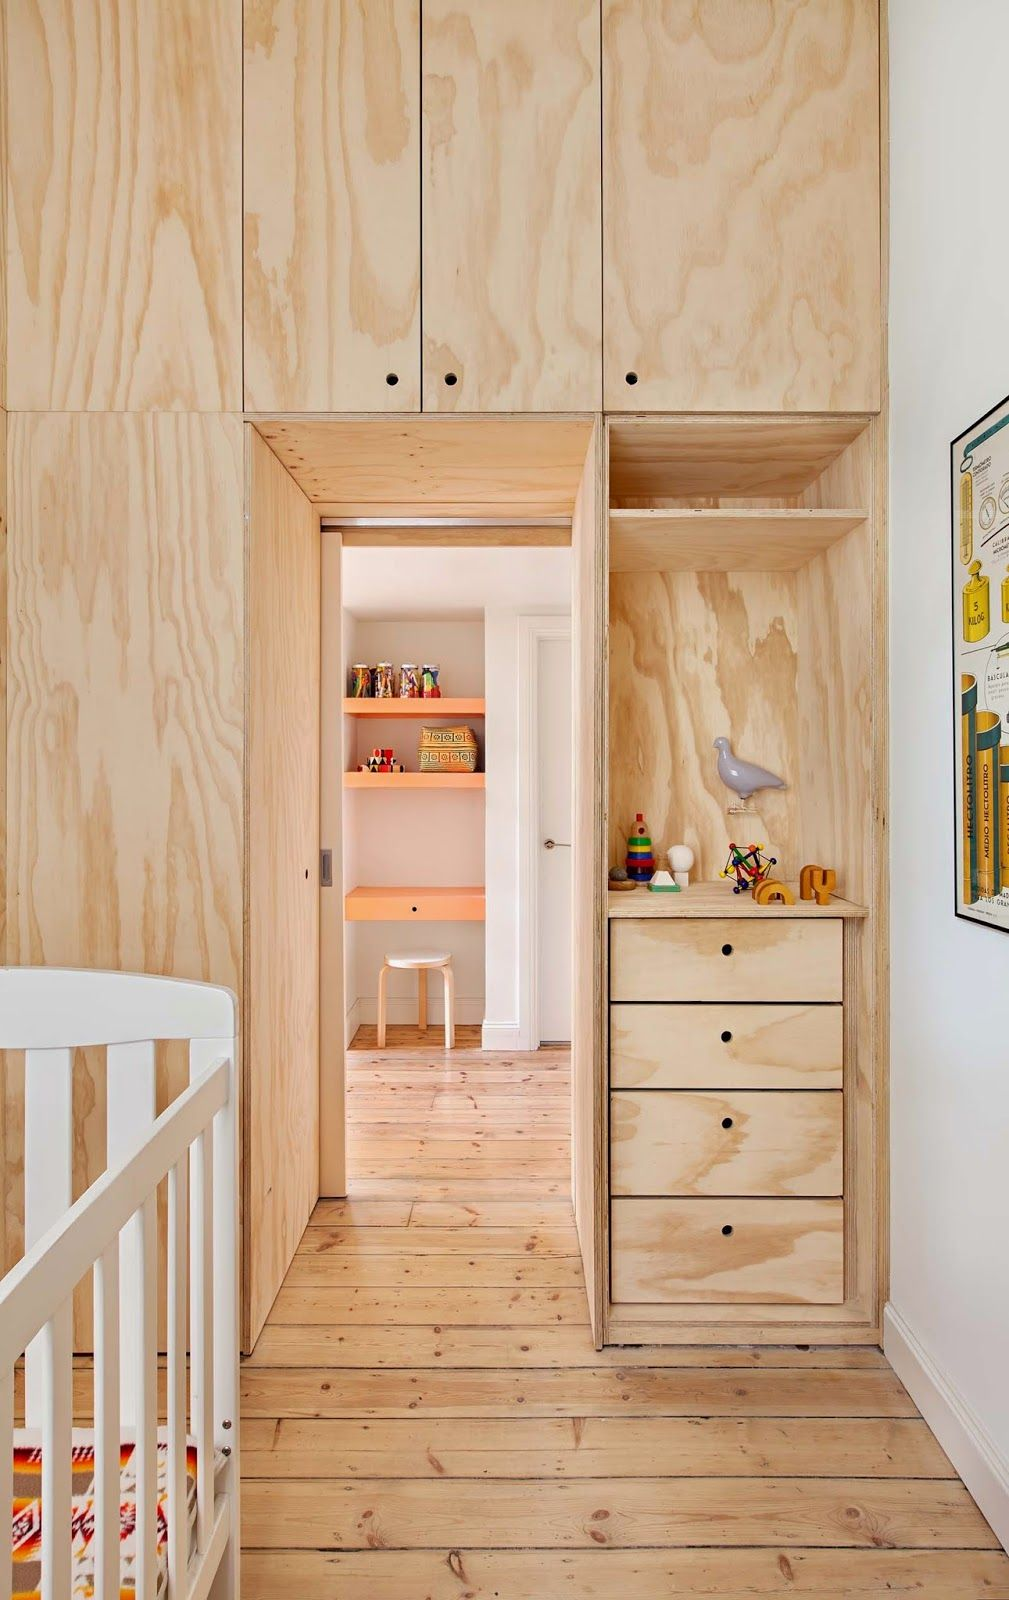 Jelanie blog plywood home with a touch of salmon wardrobe